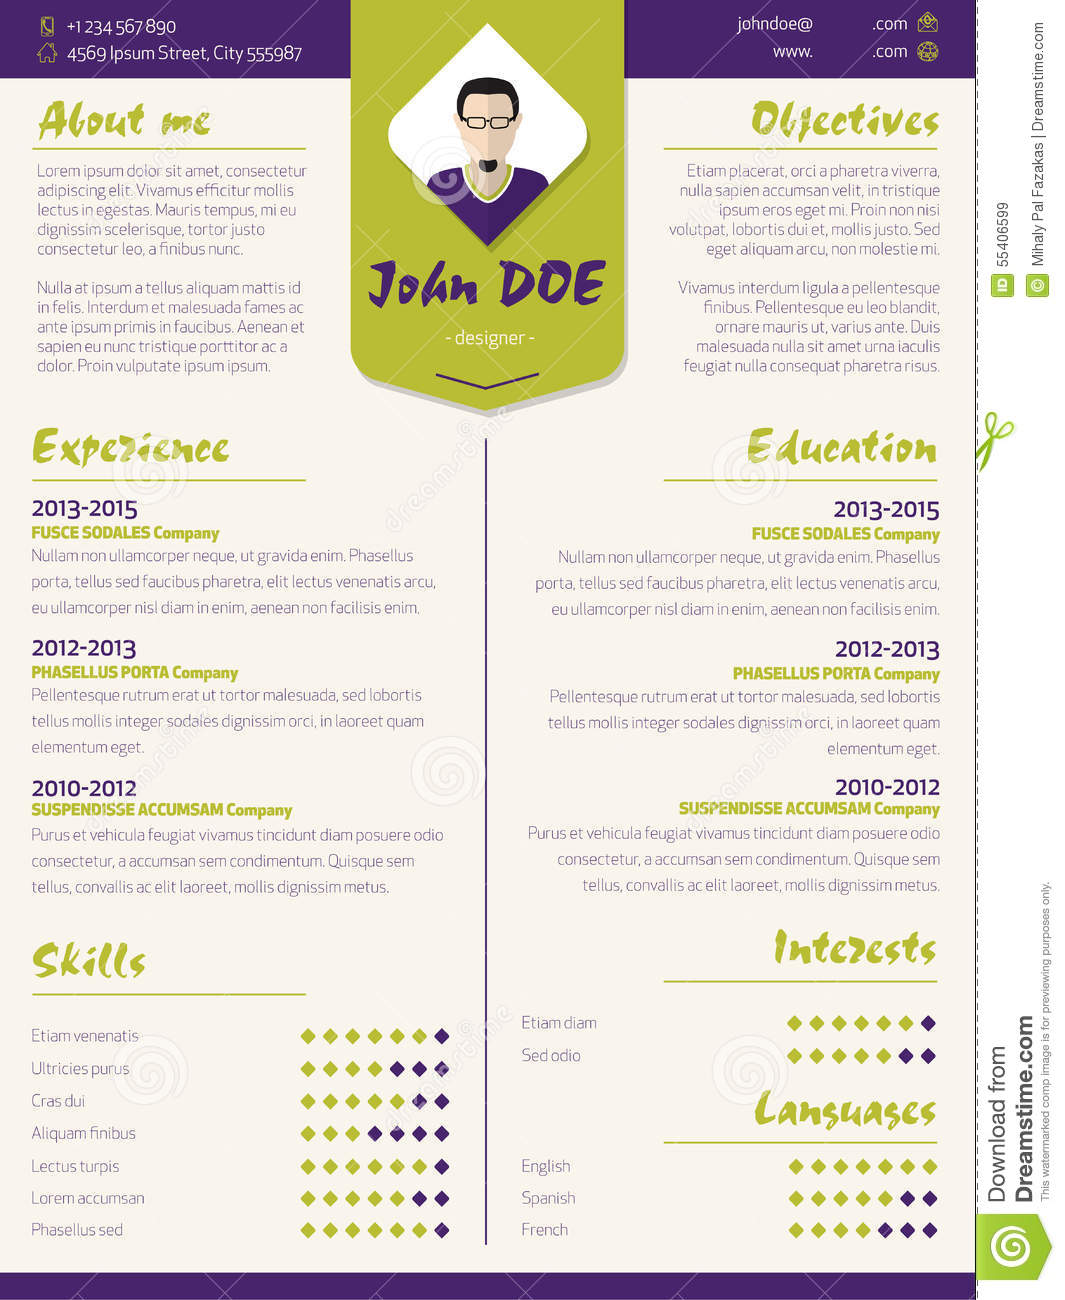 resume layout design service resume resume layout design resume templates 412 examples resume builder colorful modern resume curriculum vitae